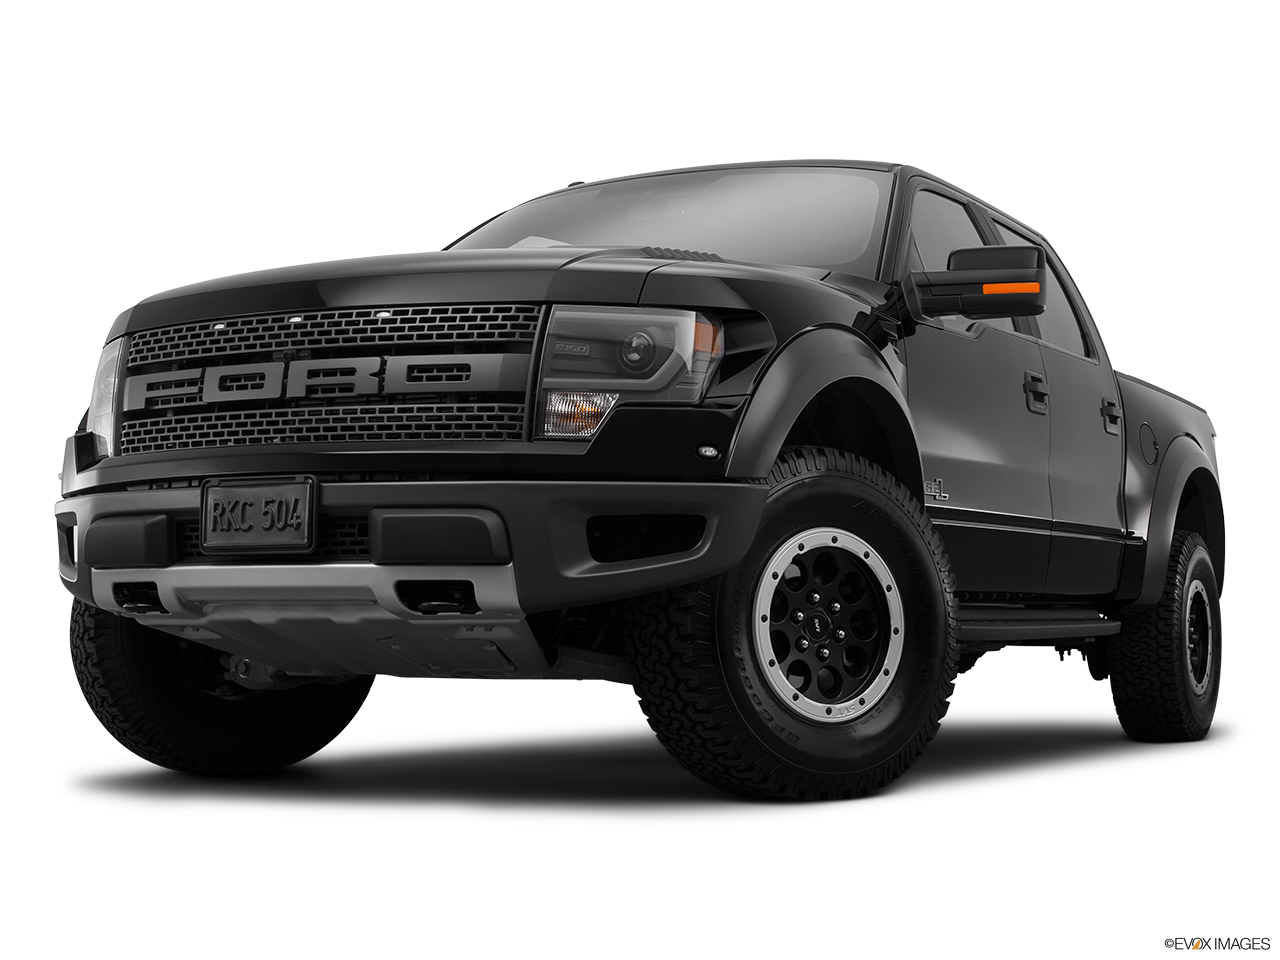 Sct Livewire Ts Is The Right Plug Here Fords Diagram Download Location 2014 Ford F 150 Svt Raptor Pickup 4x4